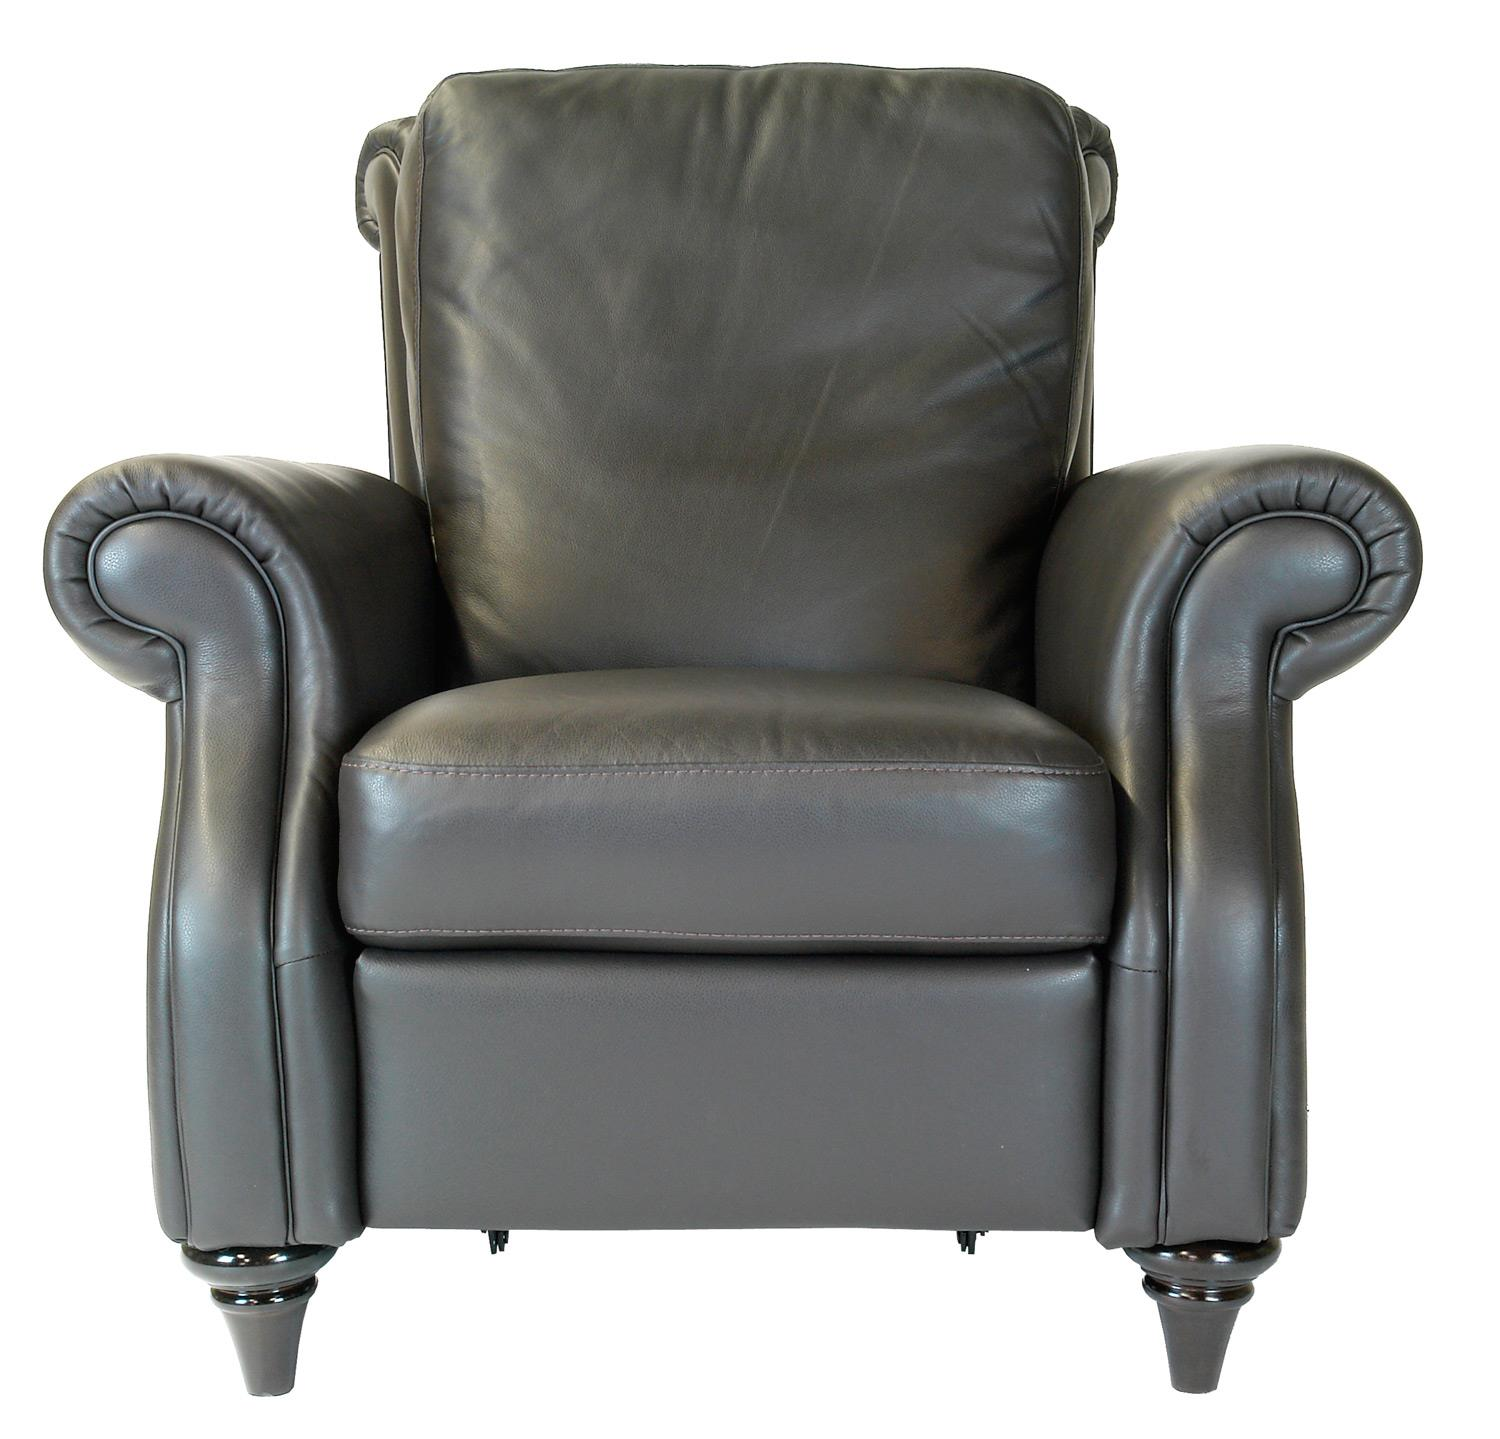 Natuzzi Editions A297 Sedendo Arm Chair - Item Number: A297-003 Dark Brown